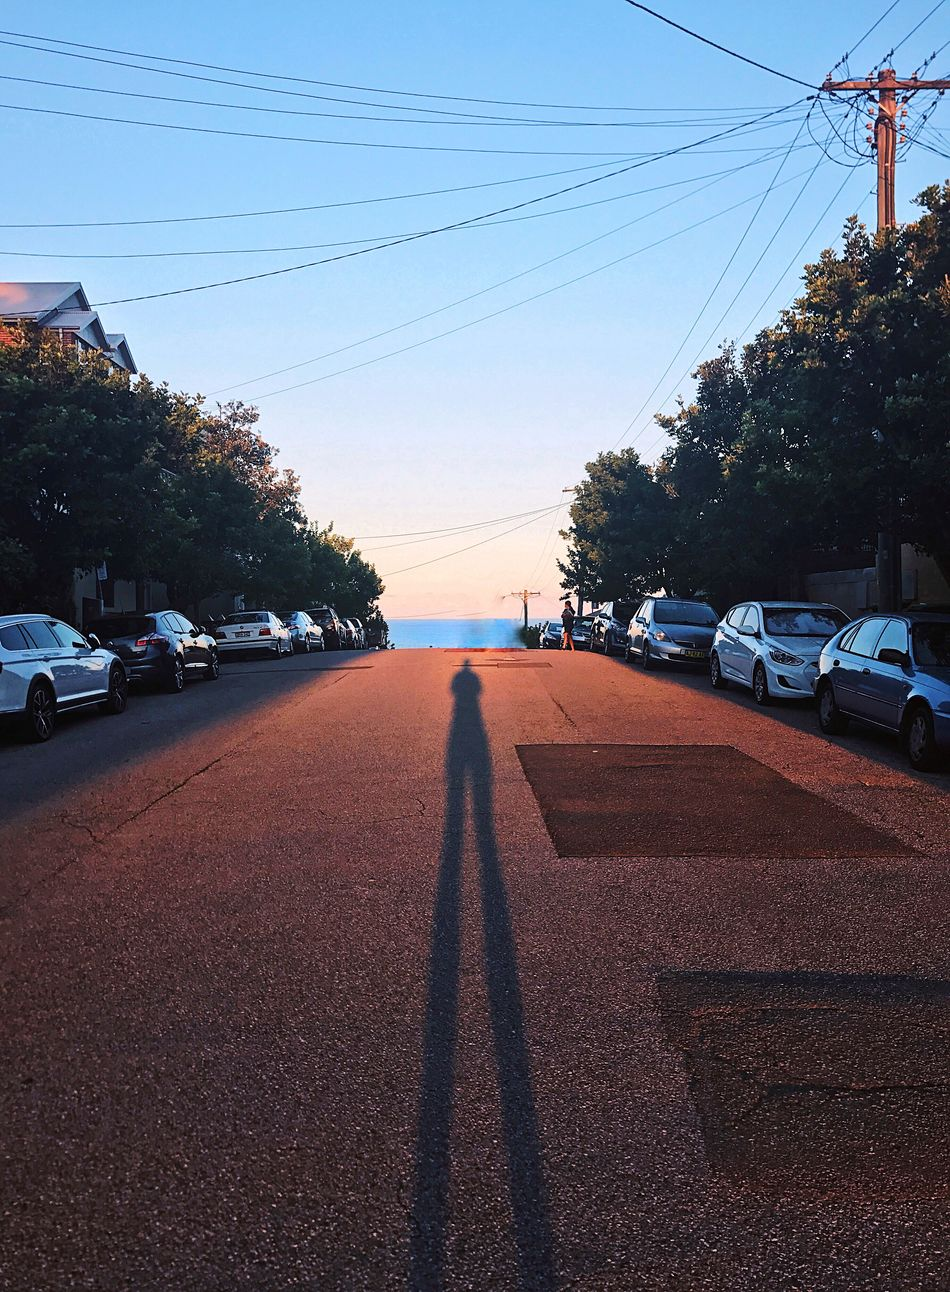 Arvo strolls Car Transportation Land Vehicle Road Cable Mode Of Transport Tree Street Electricity Pylon Sunset Outdoors One Person Sky Day Nature People Shadows & Lights EyeEmNewInHere EyeEmNewHere Sunset_collection Sunset Silhouettes Dusk Australia Beautiful Beach Life Break The Mold